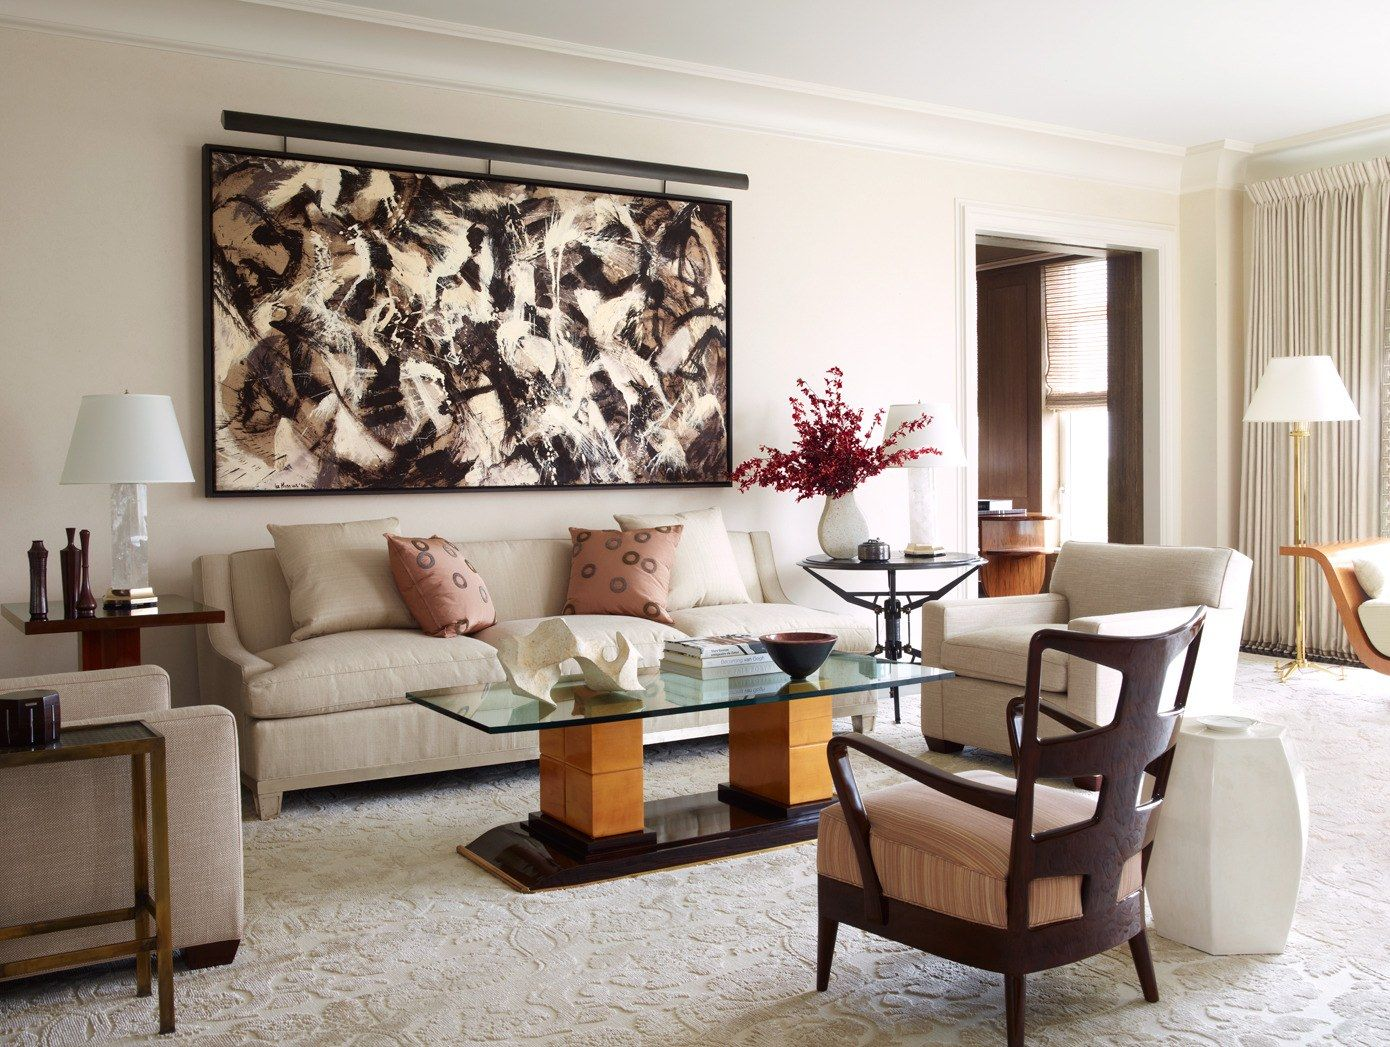 david kleinberg designs a warm and modern manhattan apartment manhattan designers A New York City Apartment Made Over by David Kleinberg | A Lee Krasner  artwork hangs on a nearby wall.